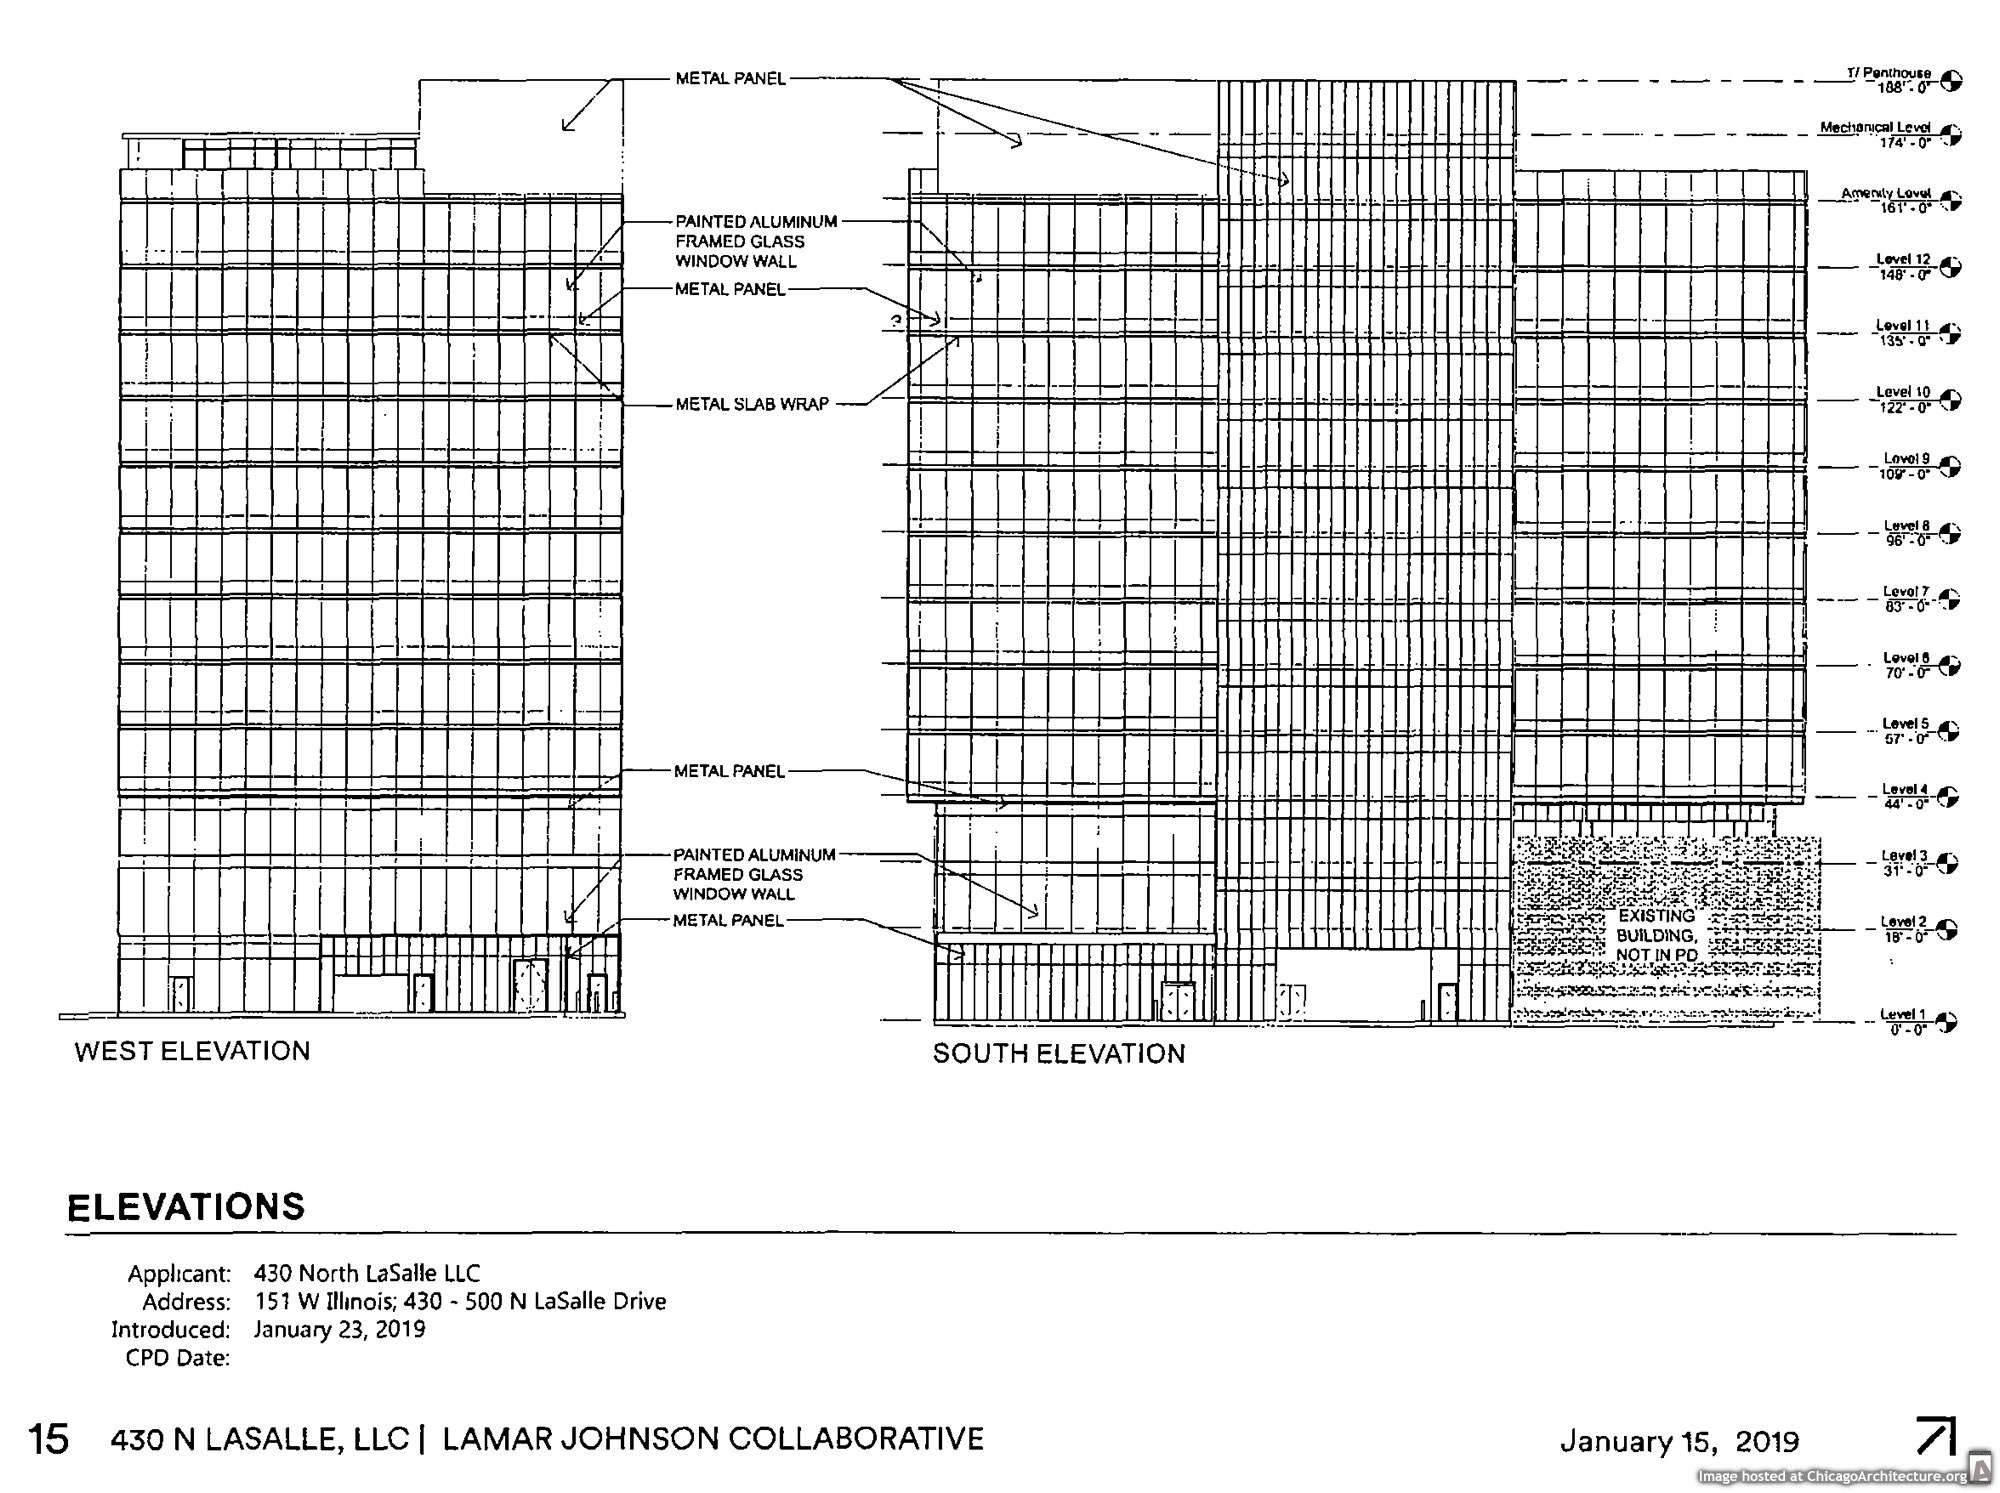 Diagram of 450 North LaSalle